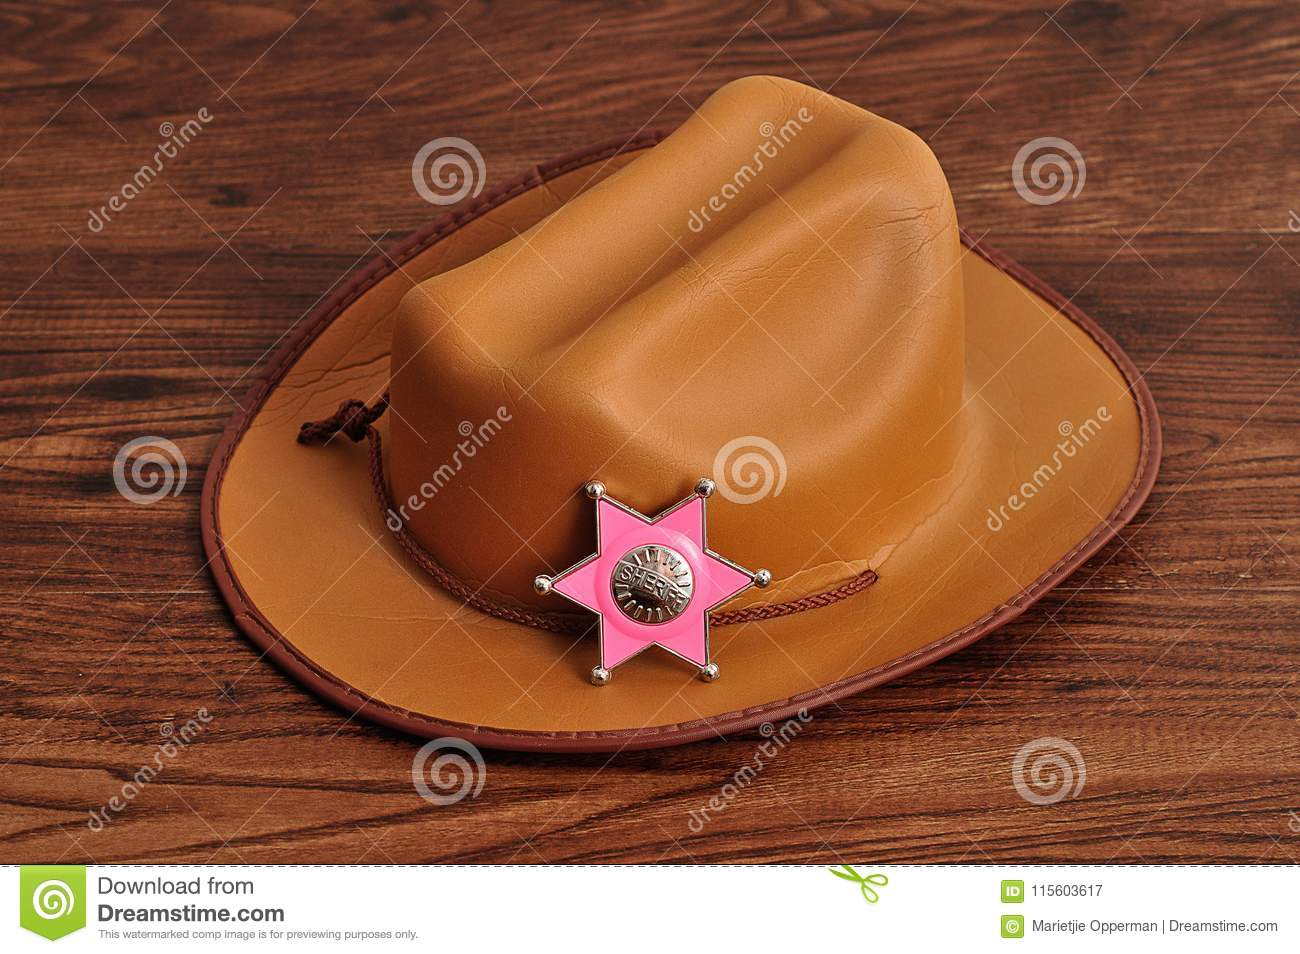 c54a71d07dae4 A Sheriff Badge With A Brown Cowboy Hat Stock Image - Image of ...